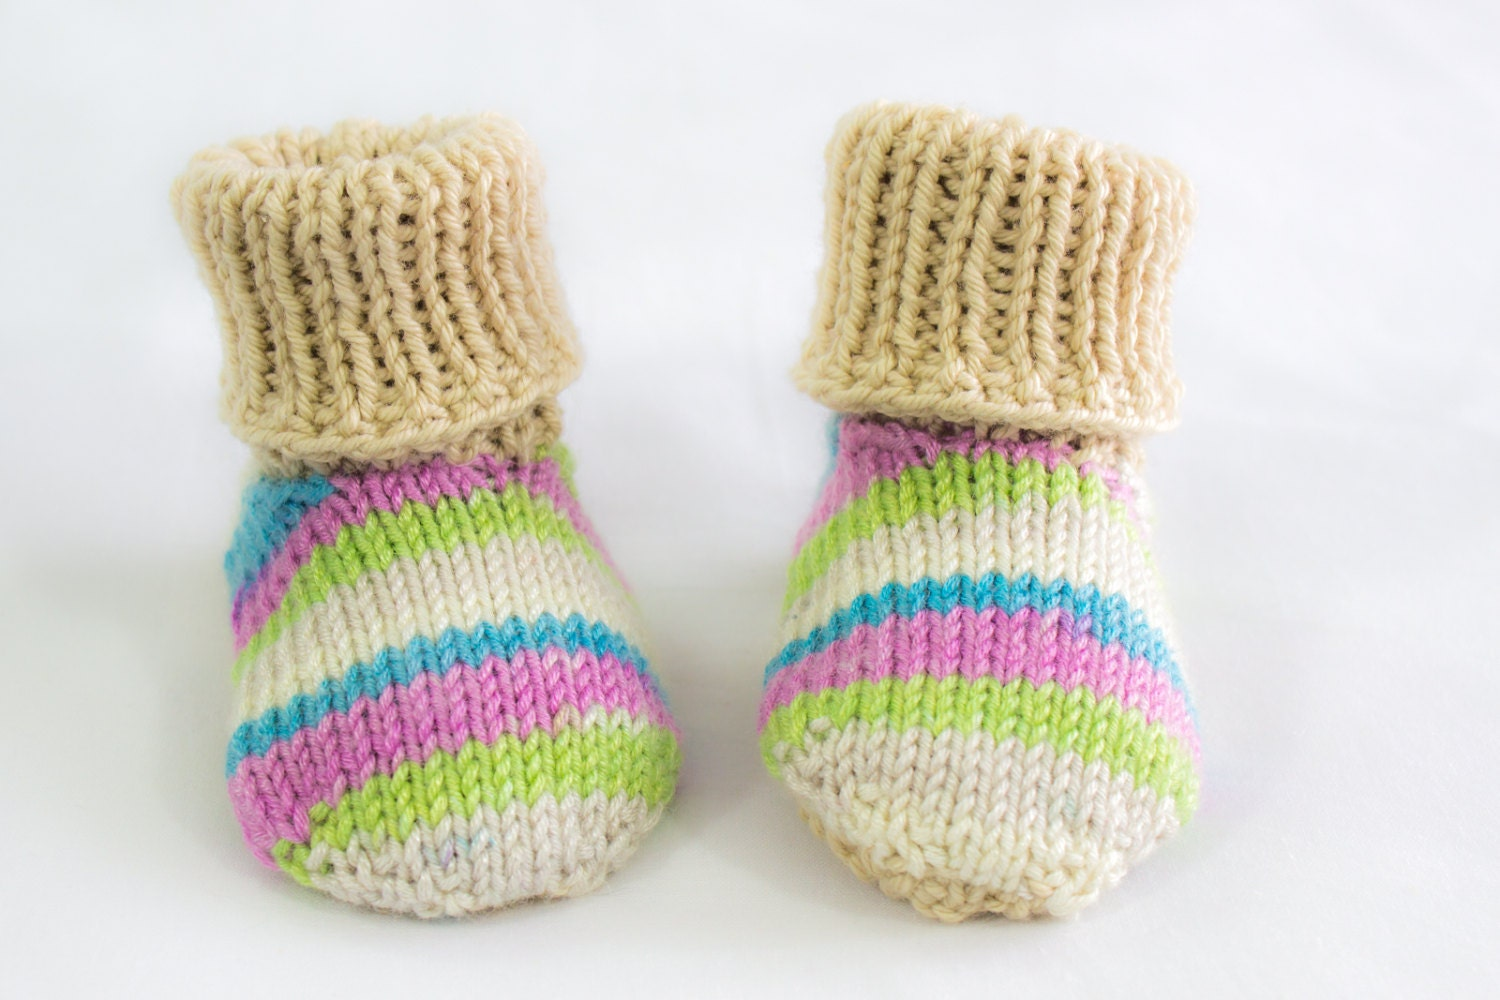 Knitted Baby Moccasins Pattern : KNITTING PATTERNToddler Baby Slippers Baby Slippers